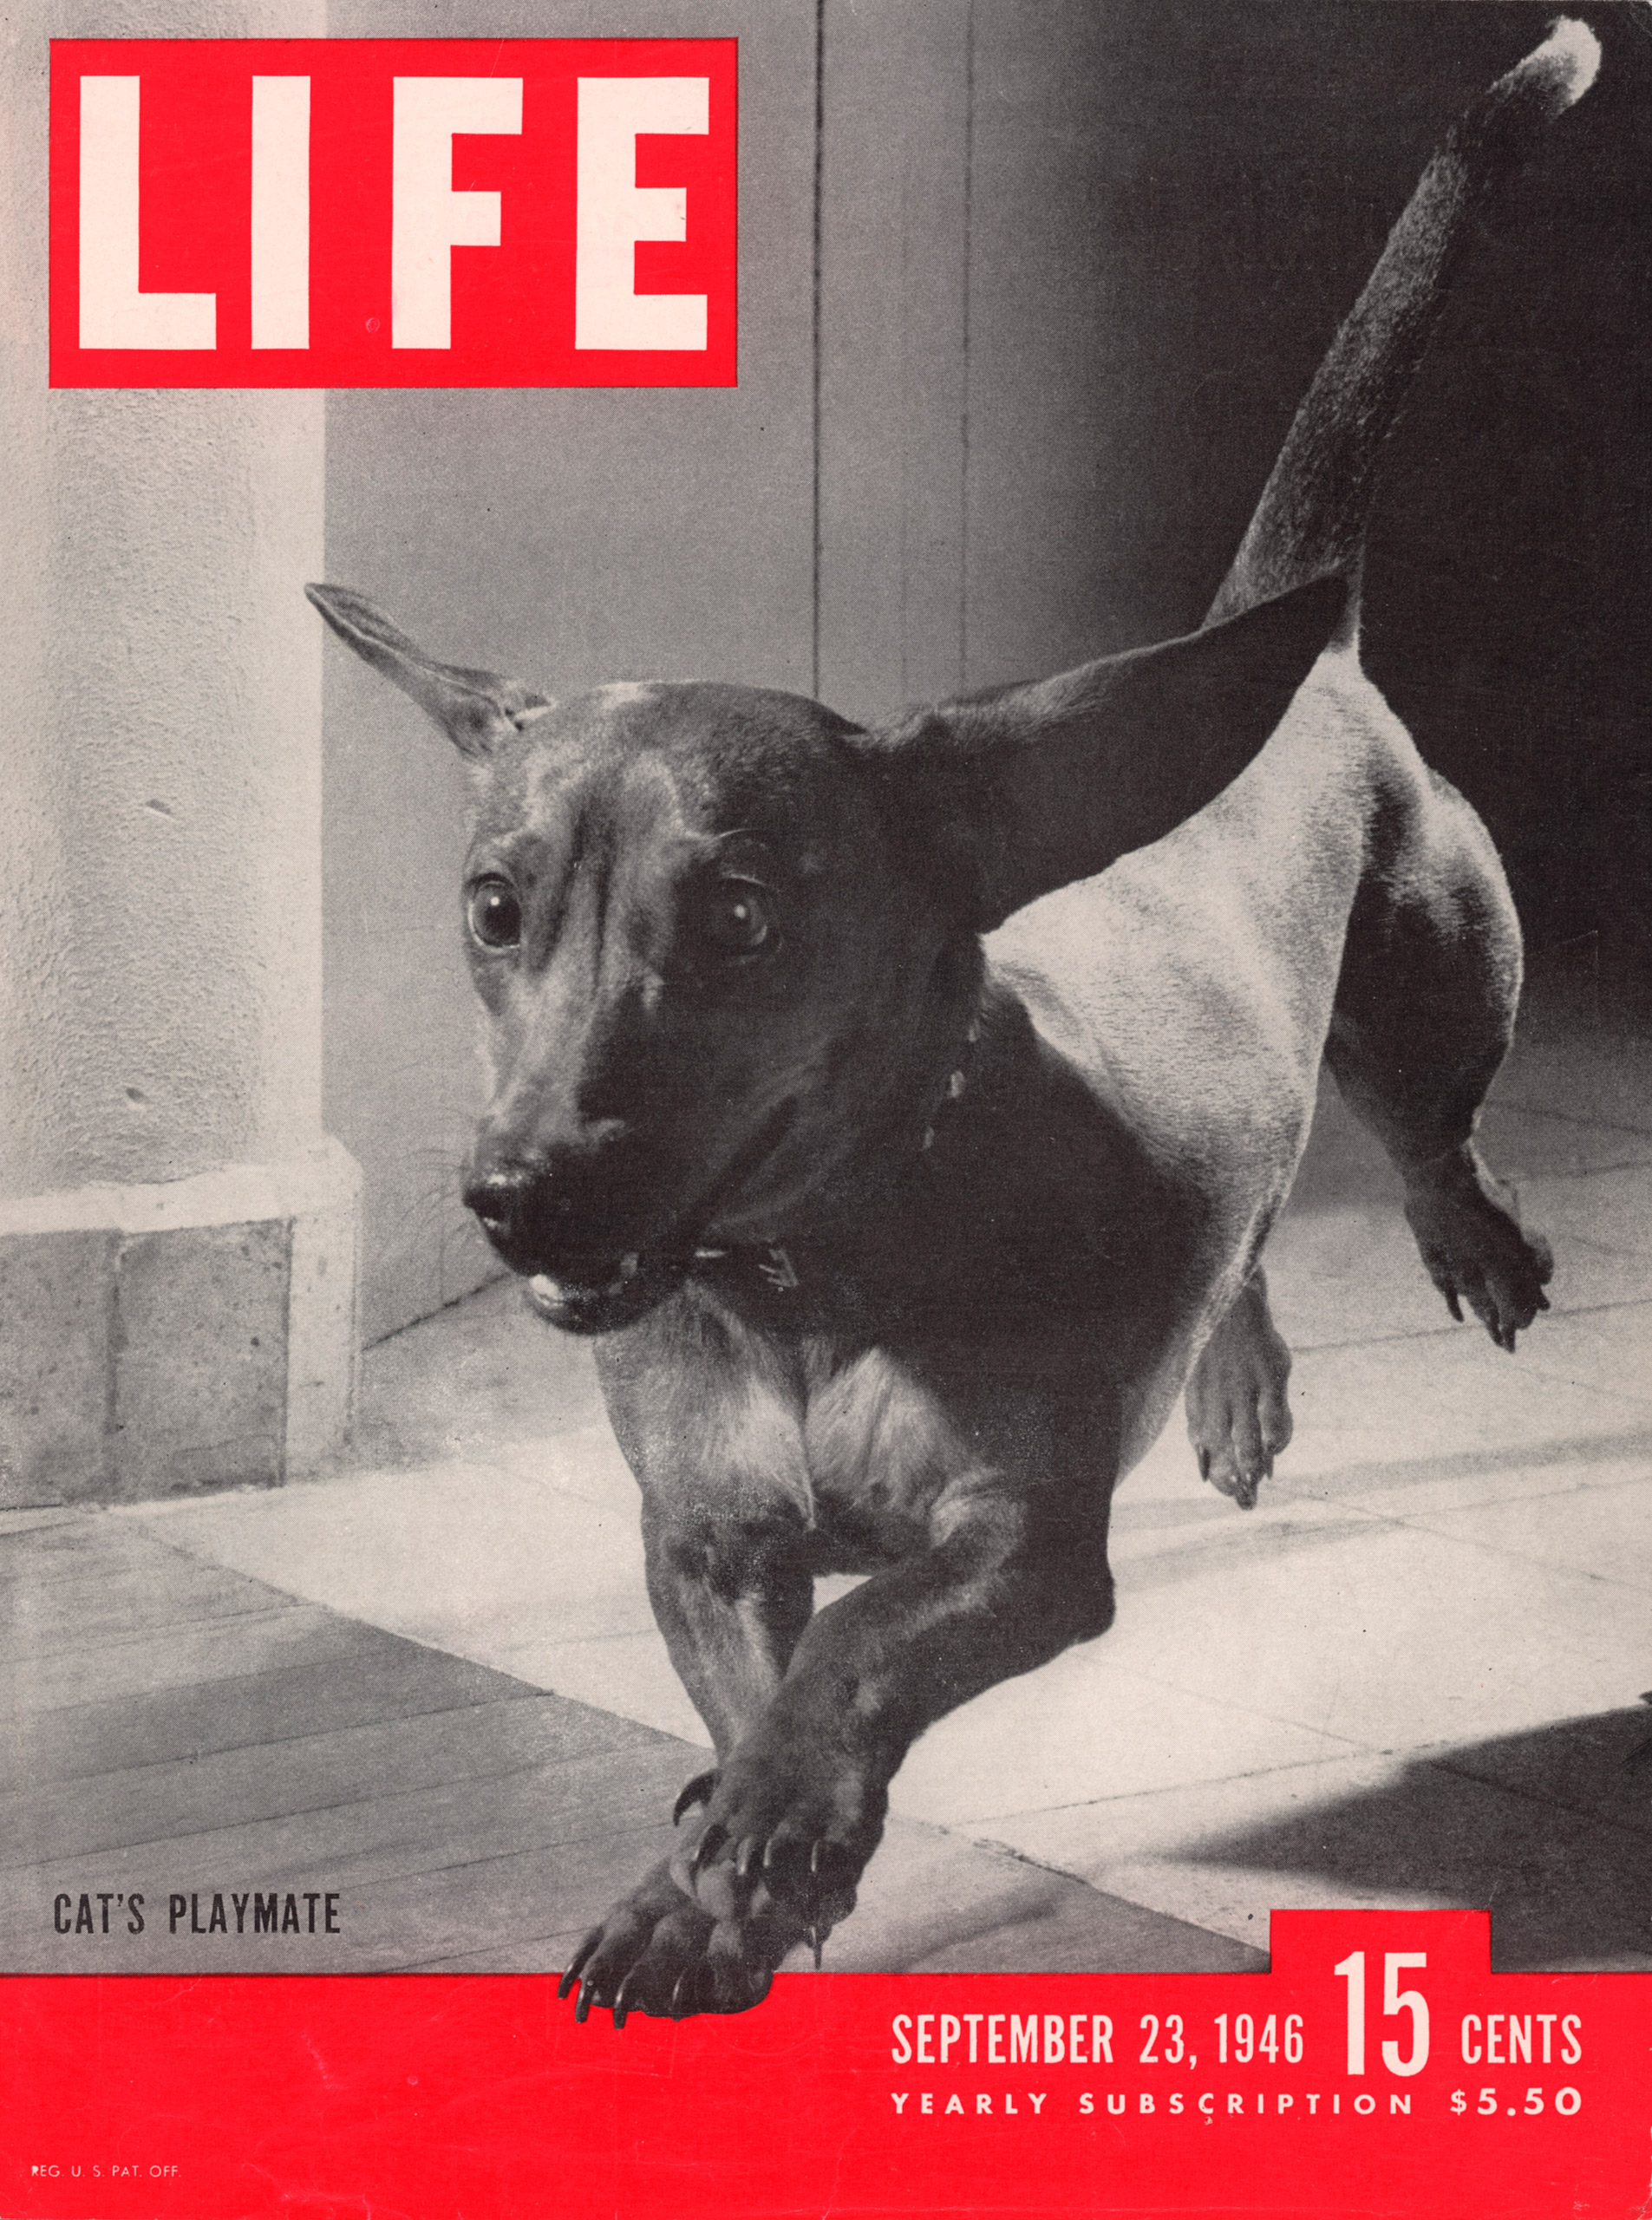 September 23, 1946 LIFE Magazine cover (photo by Frank Scherschel).